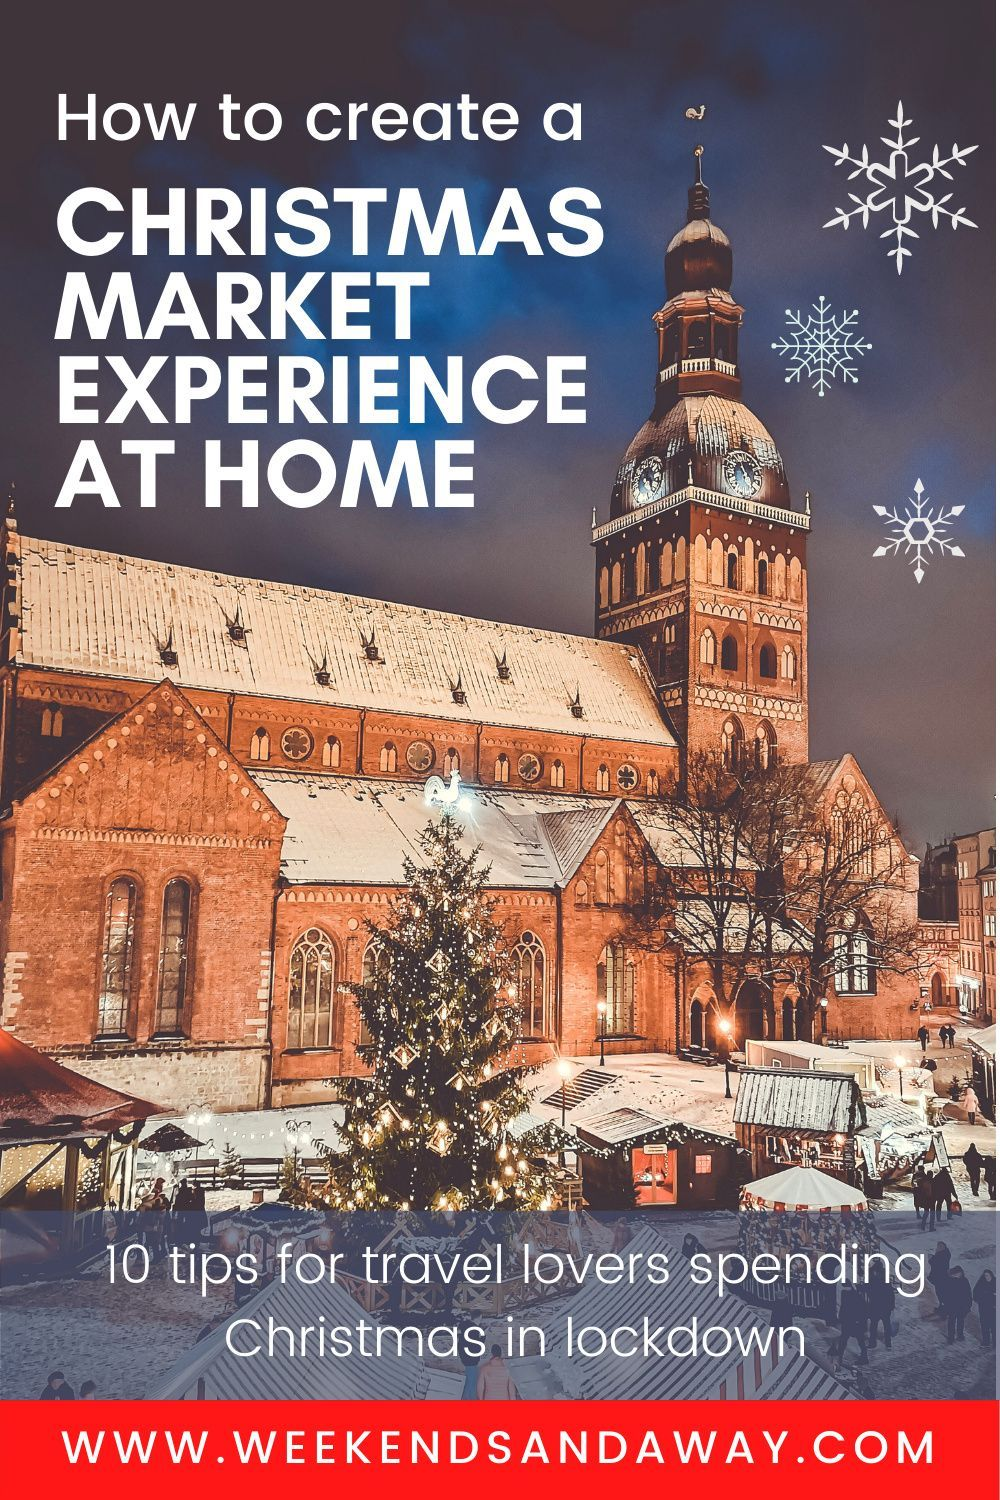 Even though we can't visit the European Christmas markets for real this year, I'm determined to still make the most of the festive season at home! Whilst the regular Christmas market experience won't be happening in 2020, I've put together a few creative ideas for how you can bring the magic of the European Christmas markets home, including food, decorations and other fun ideas. #Christmastravel #Christmasmarkets #lockdownchristmas